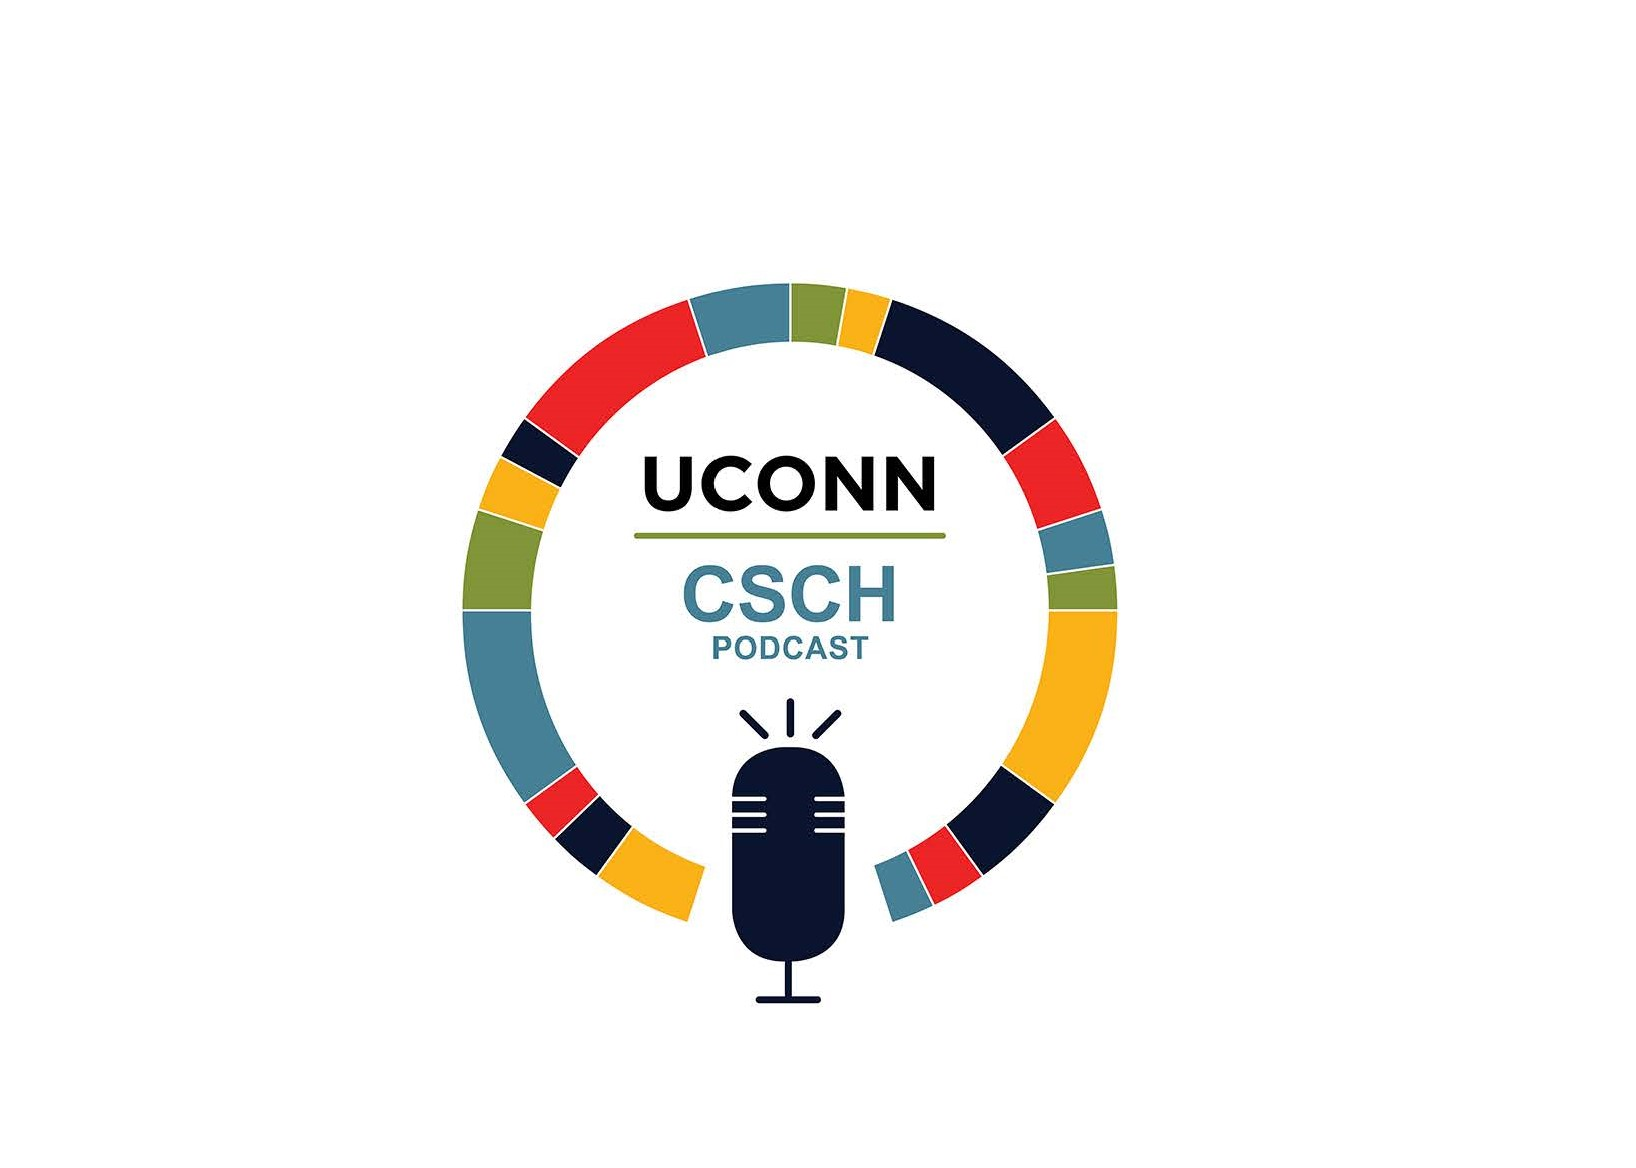 Words UConn CSCH Podcast encircled by colorful ring above cartoon microphone